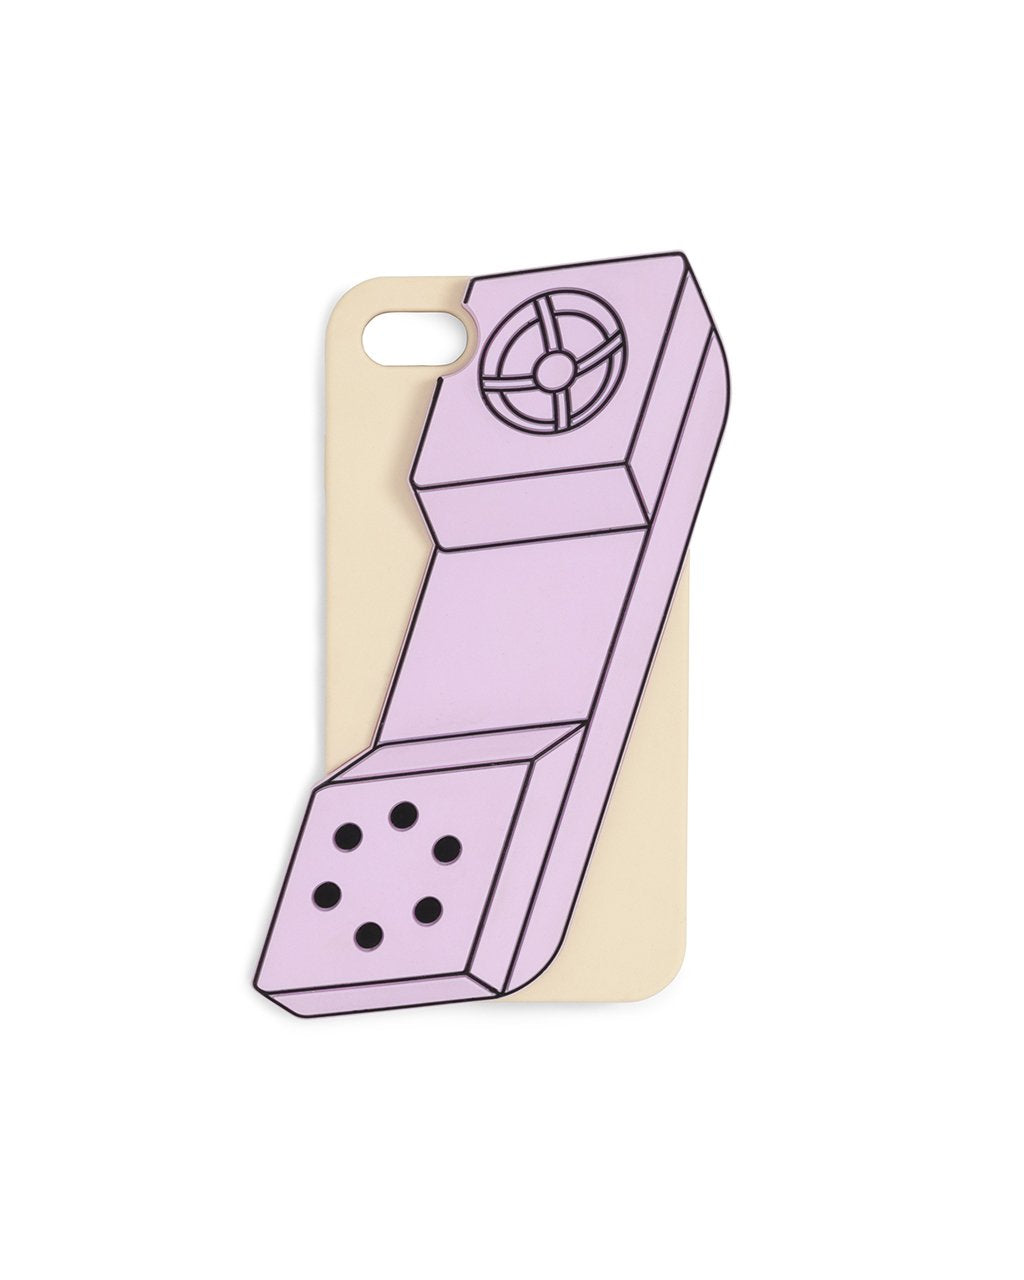 the latest 1bef0 10348 Silicone iPhone Case - Hold The Phone